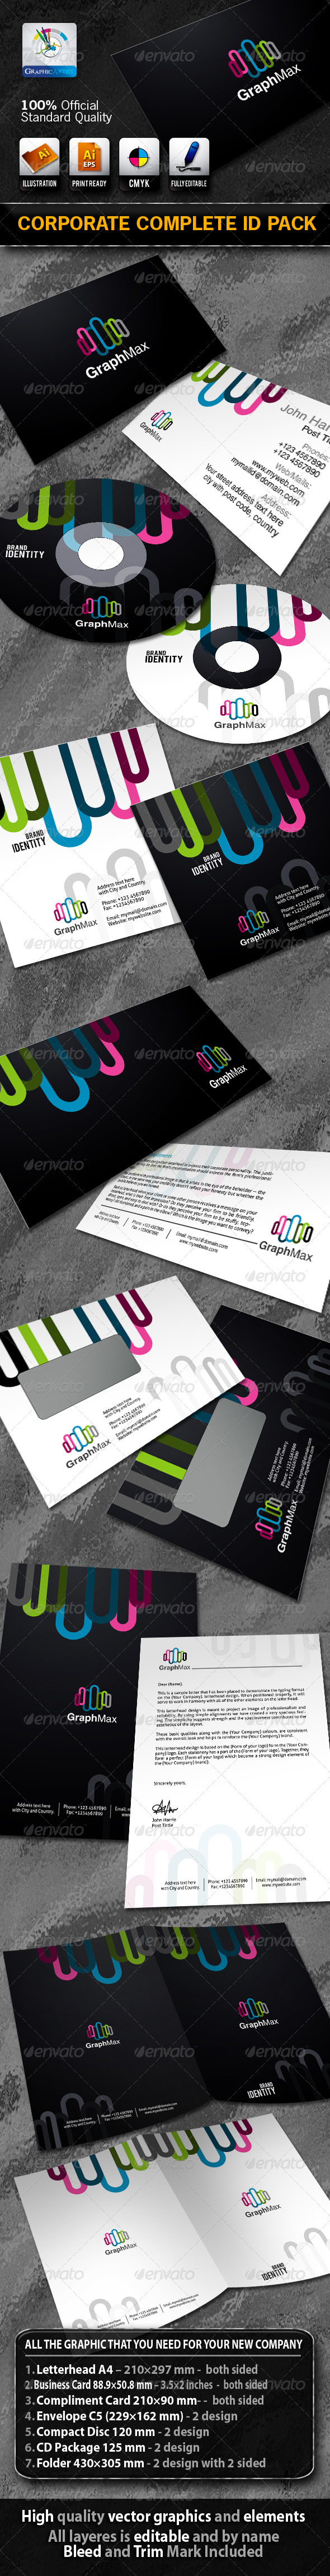 GraphMax Business Corporate ID Pack With Logo - Stationery Print Templates